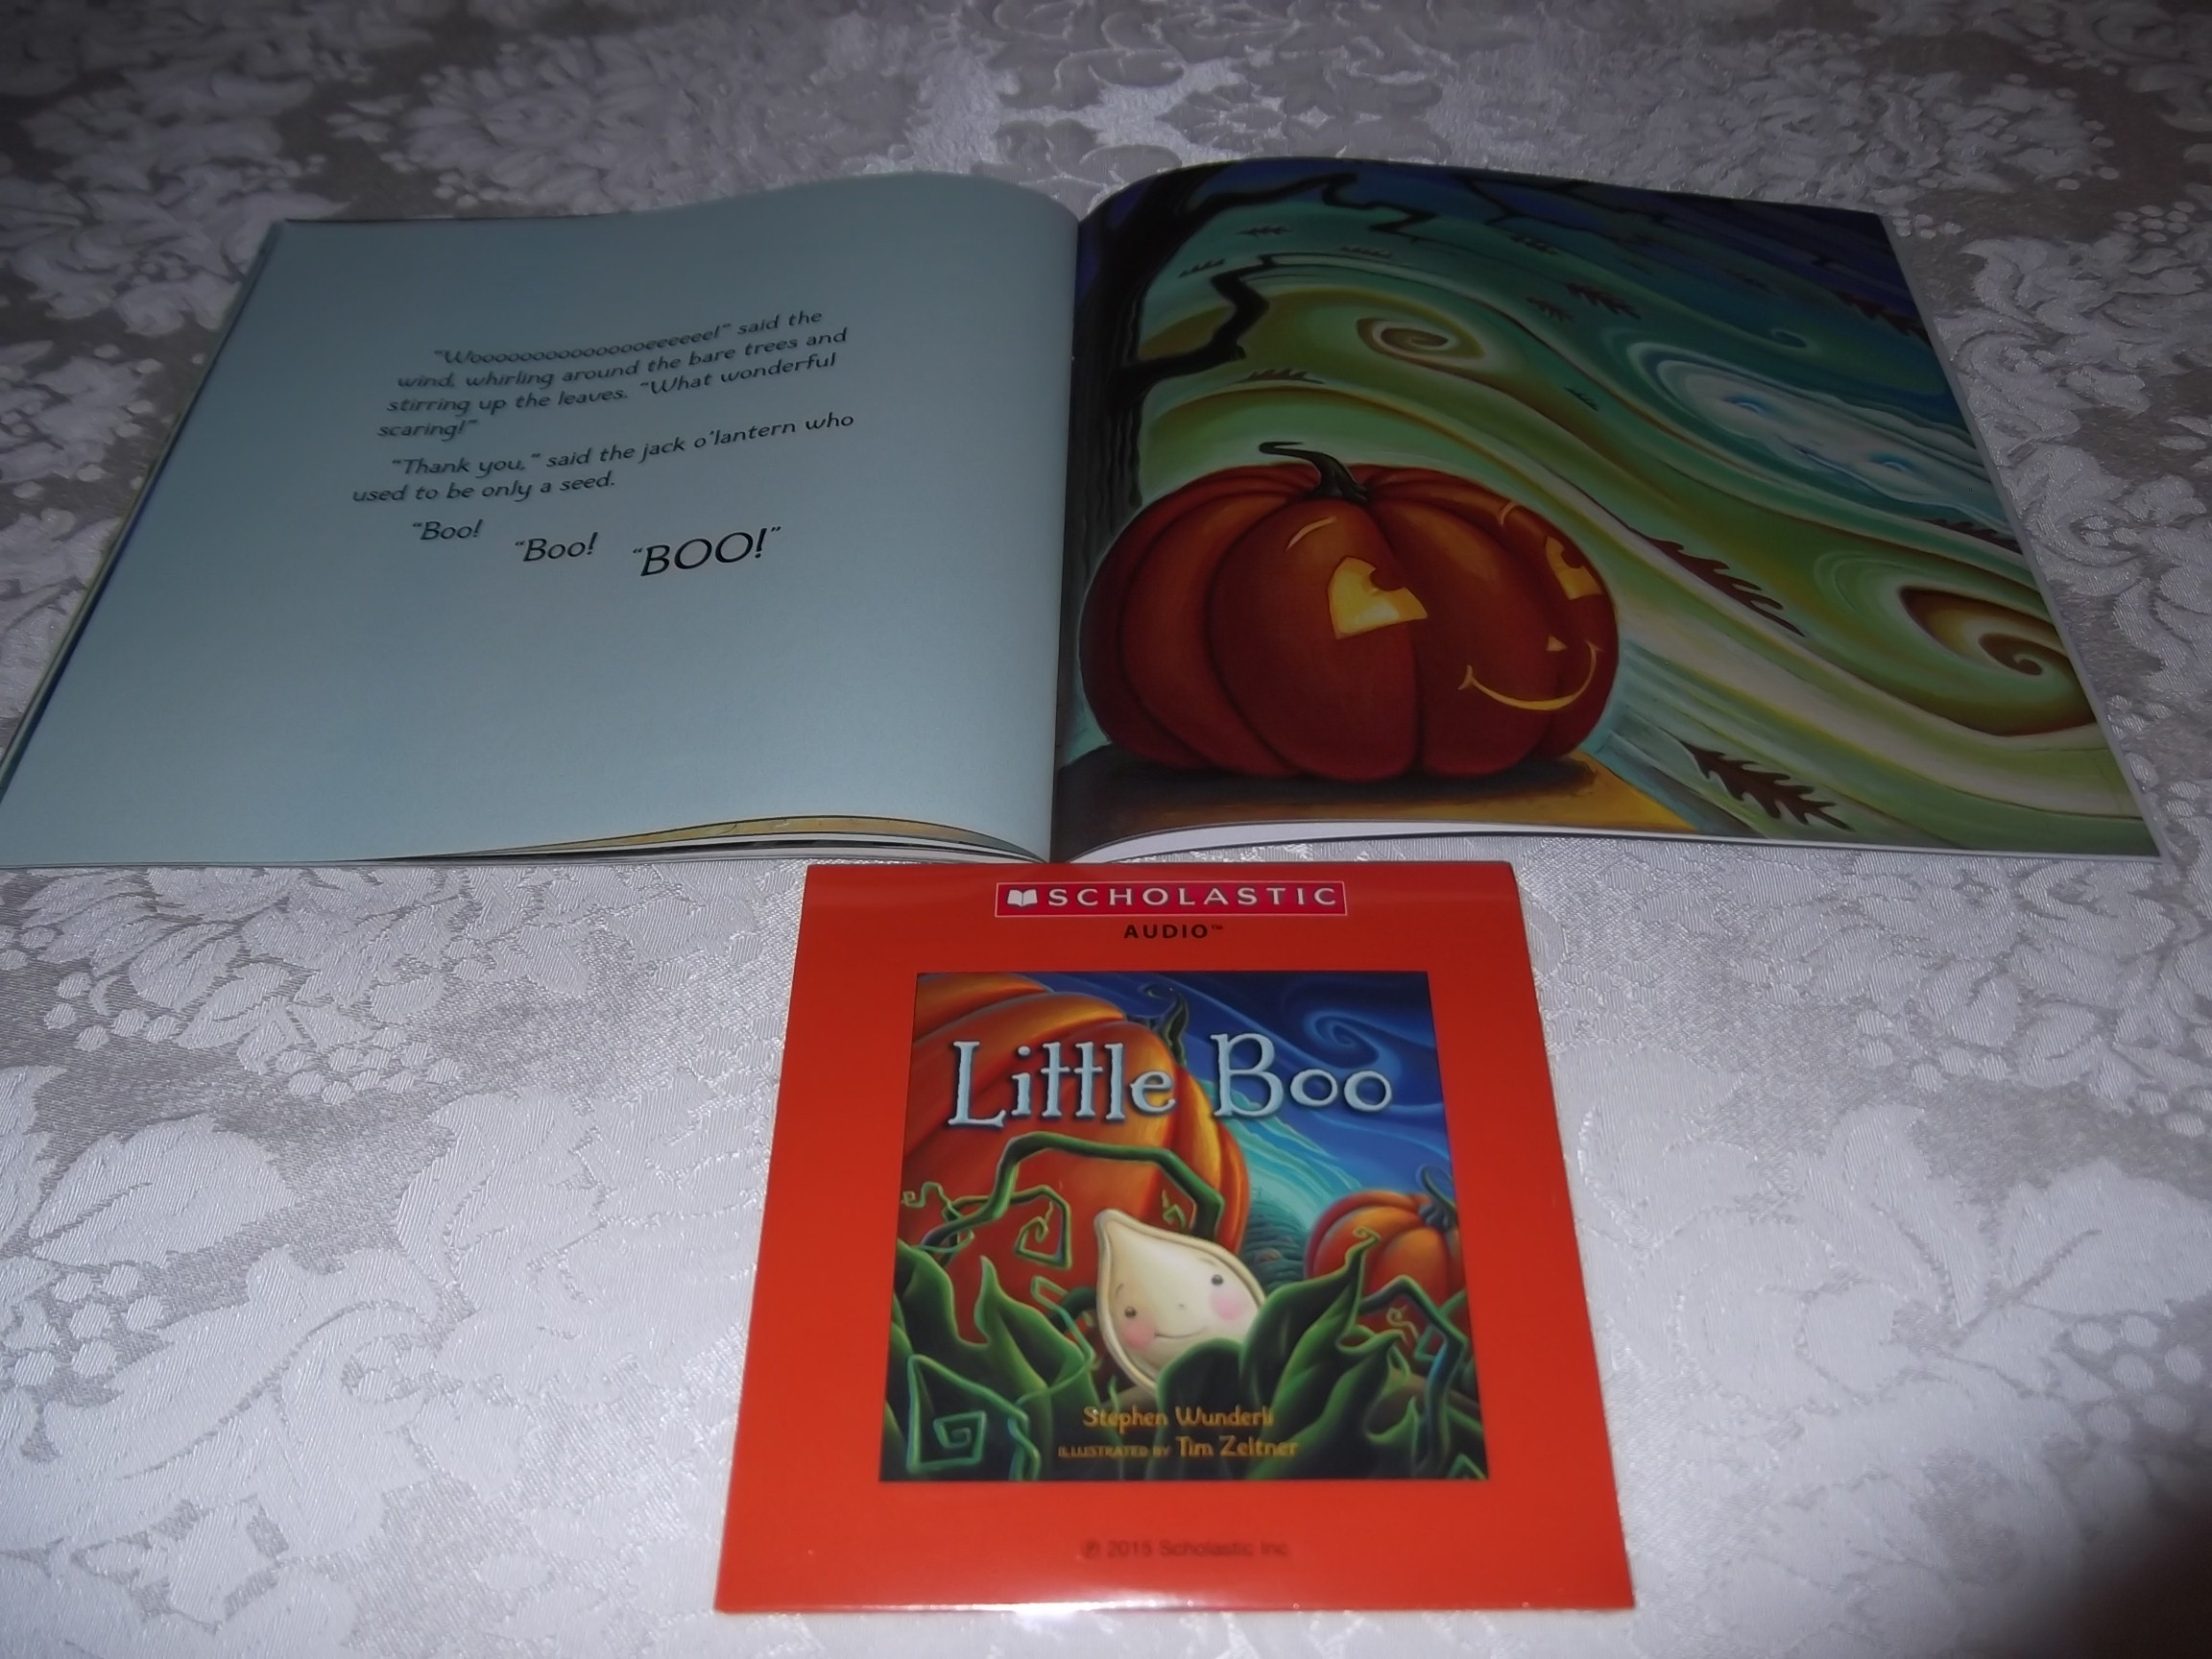 Image 7 of Little Boo Stephen Wunderli Audio CD & SC Brand New